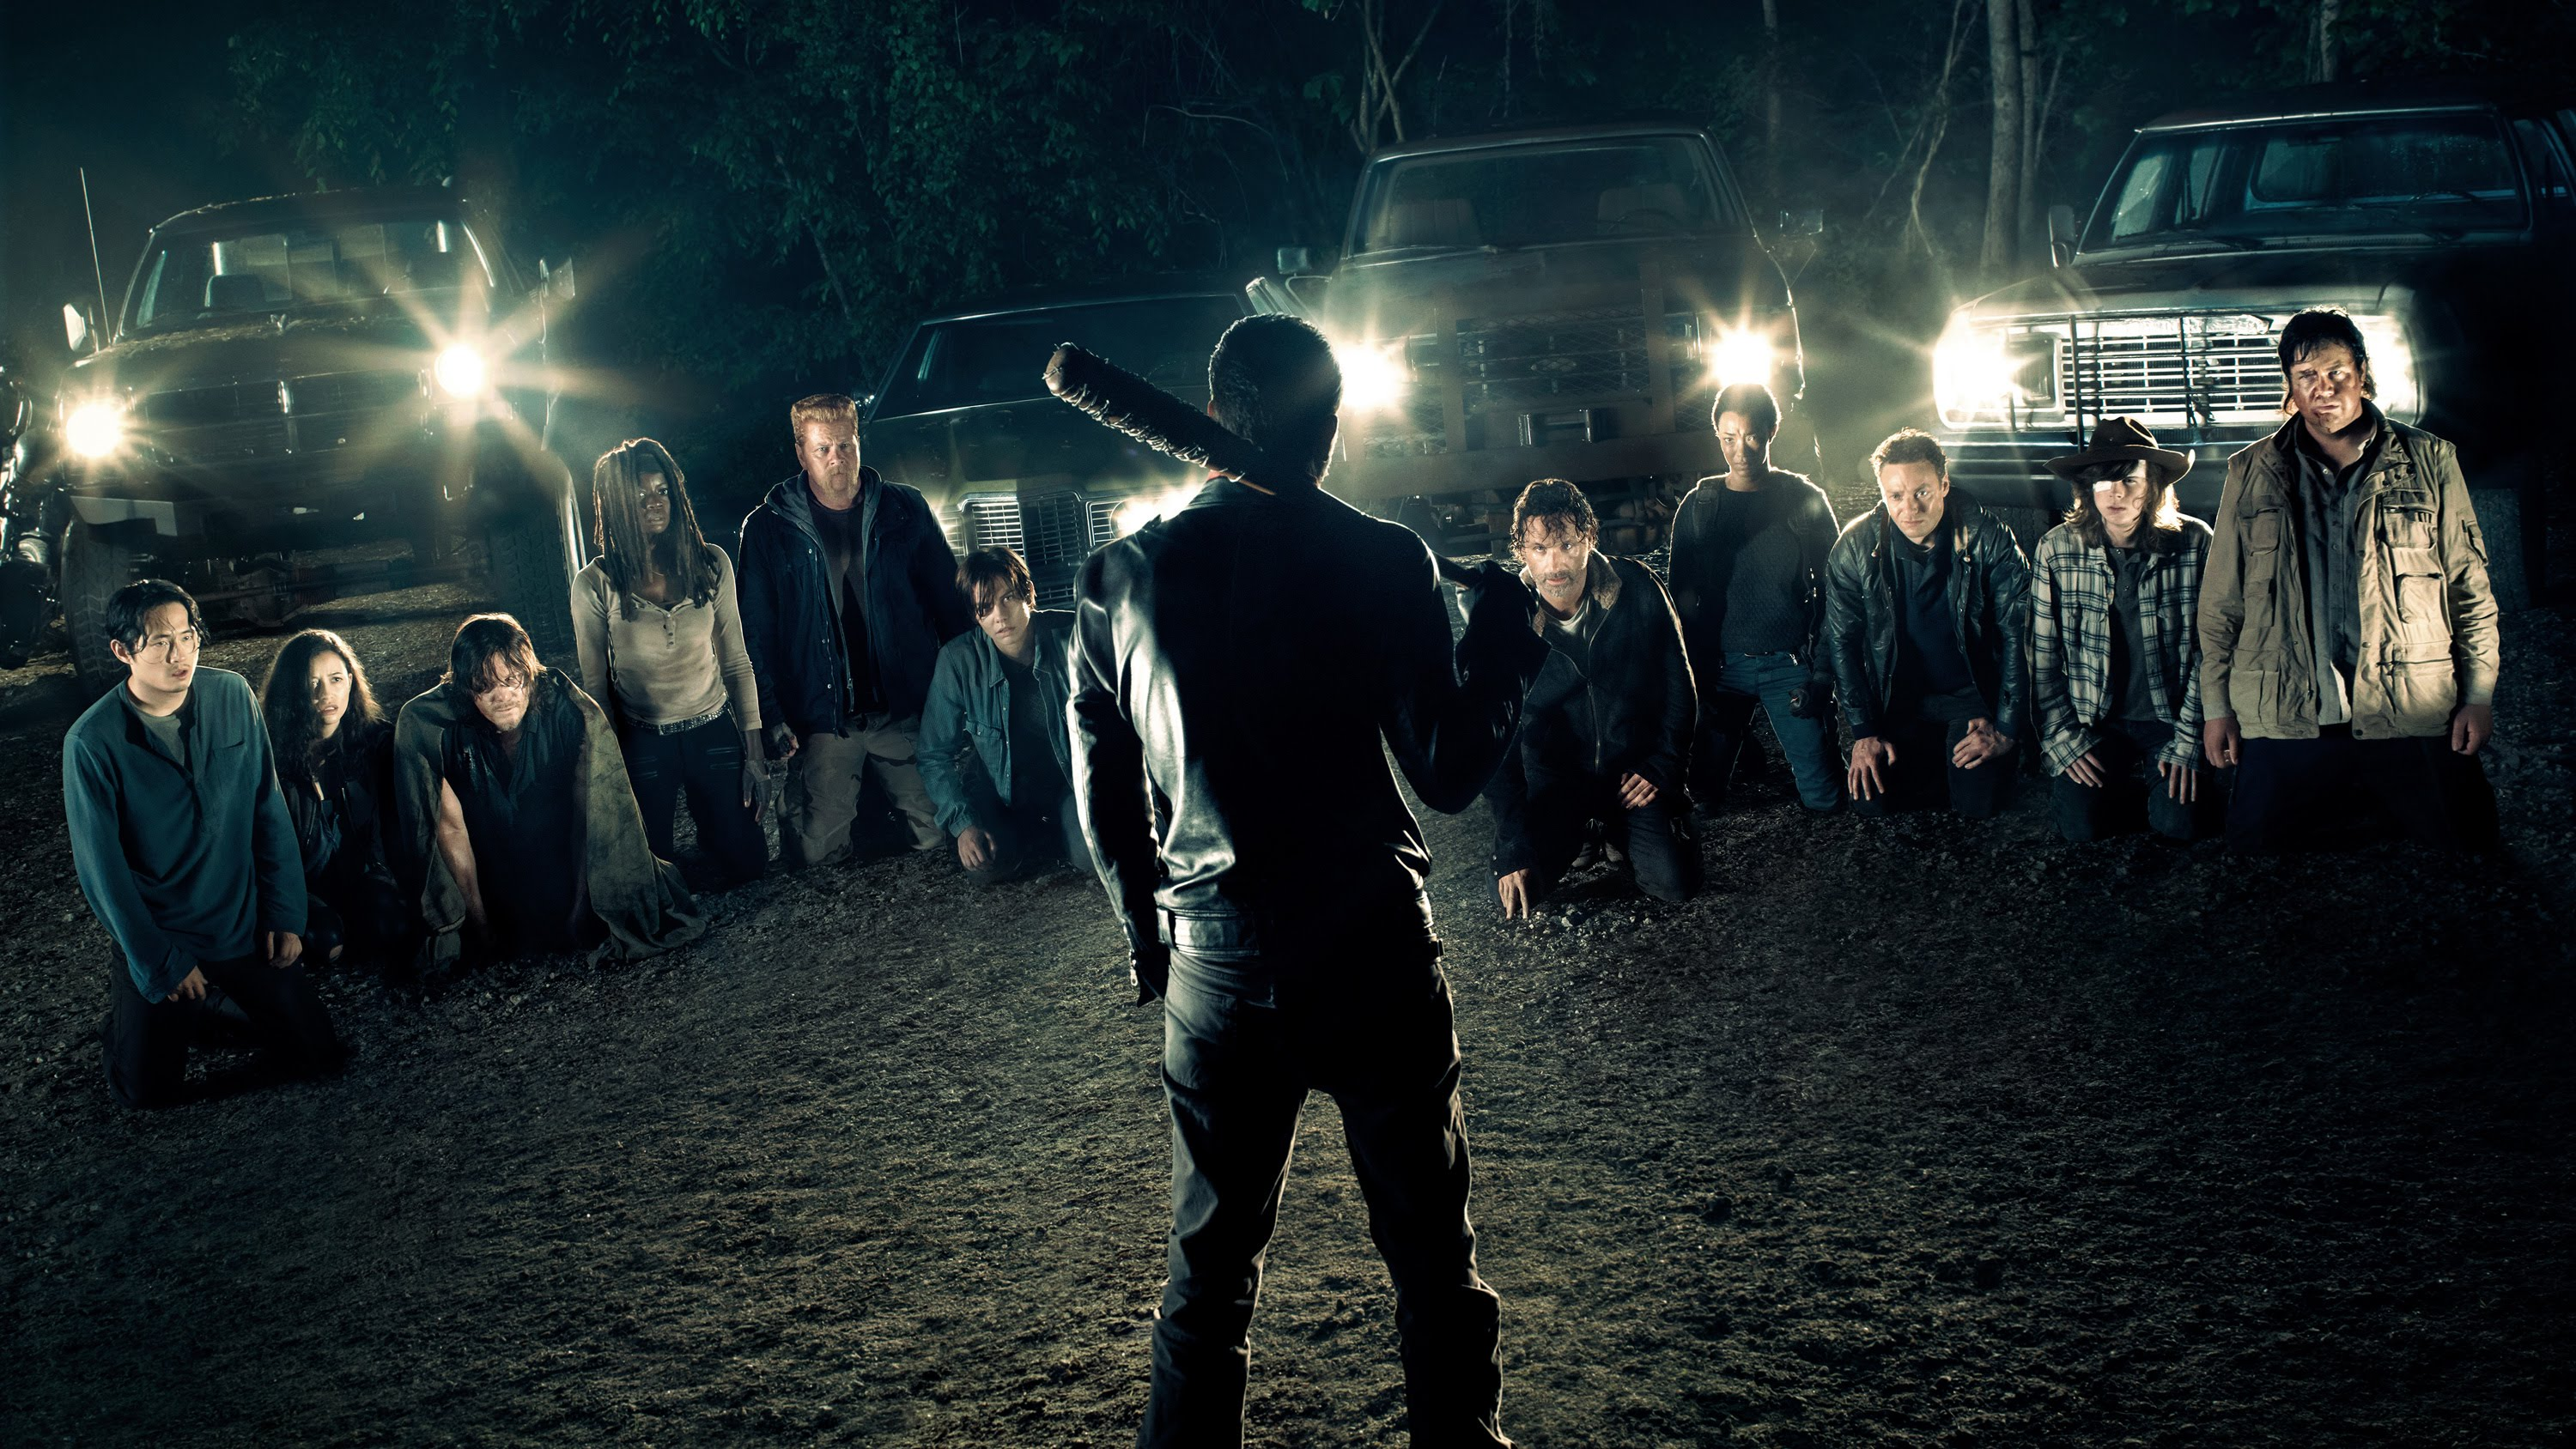 HD Wallpaper | Background Image ID:719647. 3000x1688 TV Show The Walking Dead